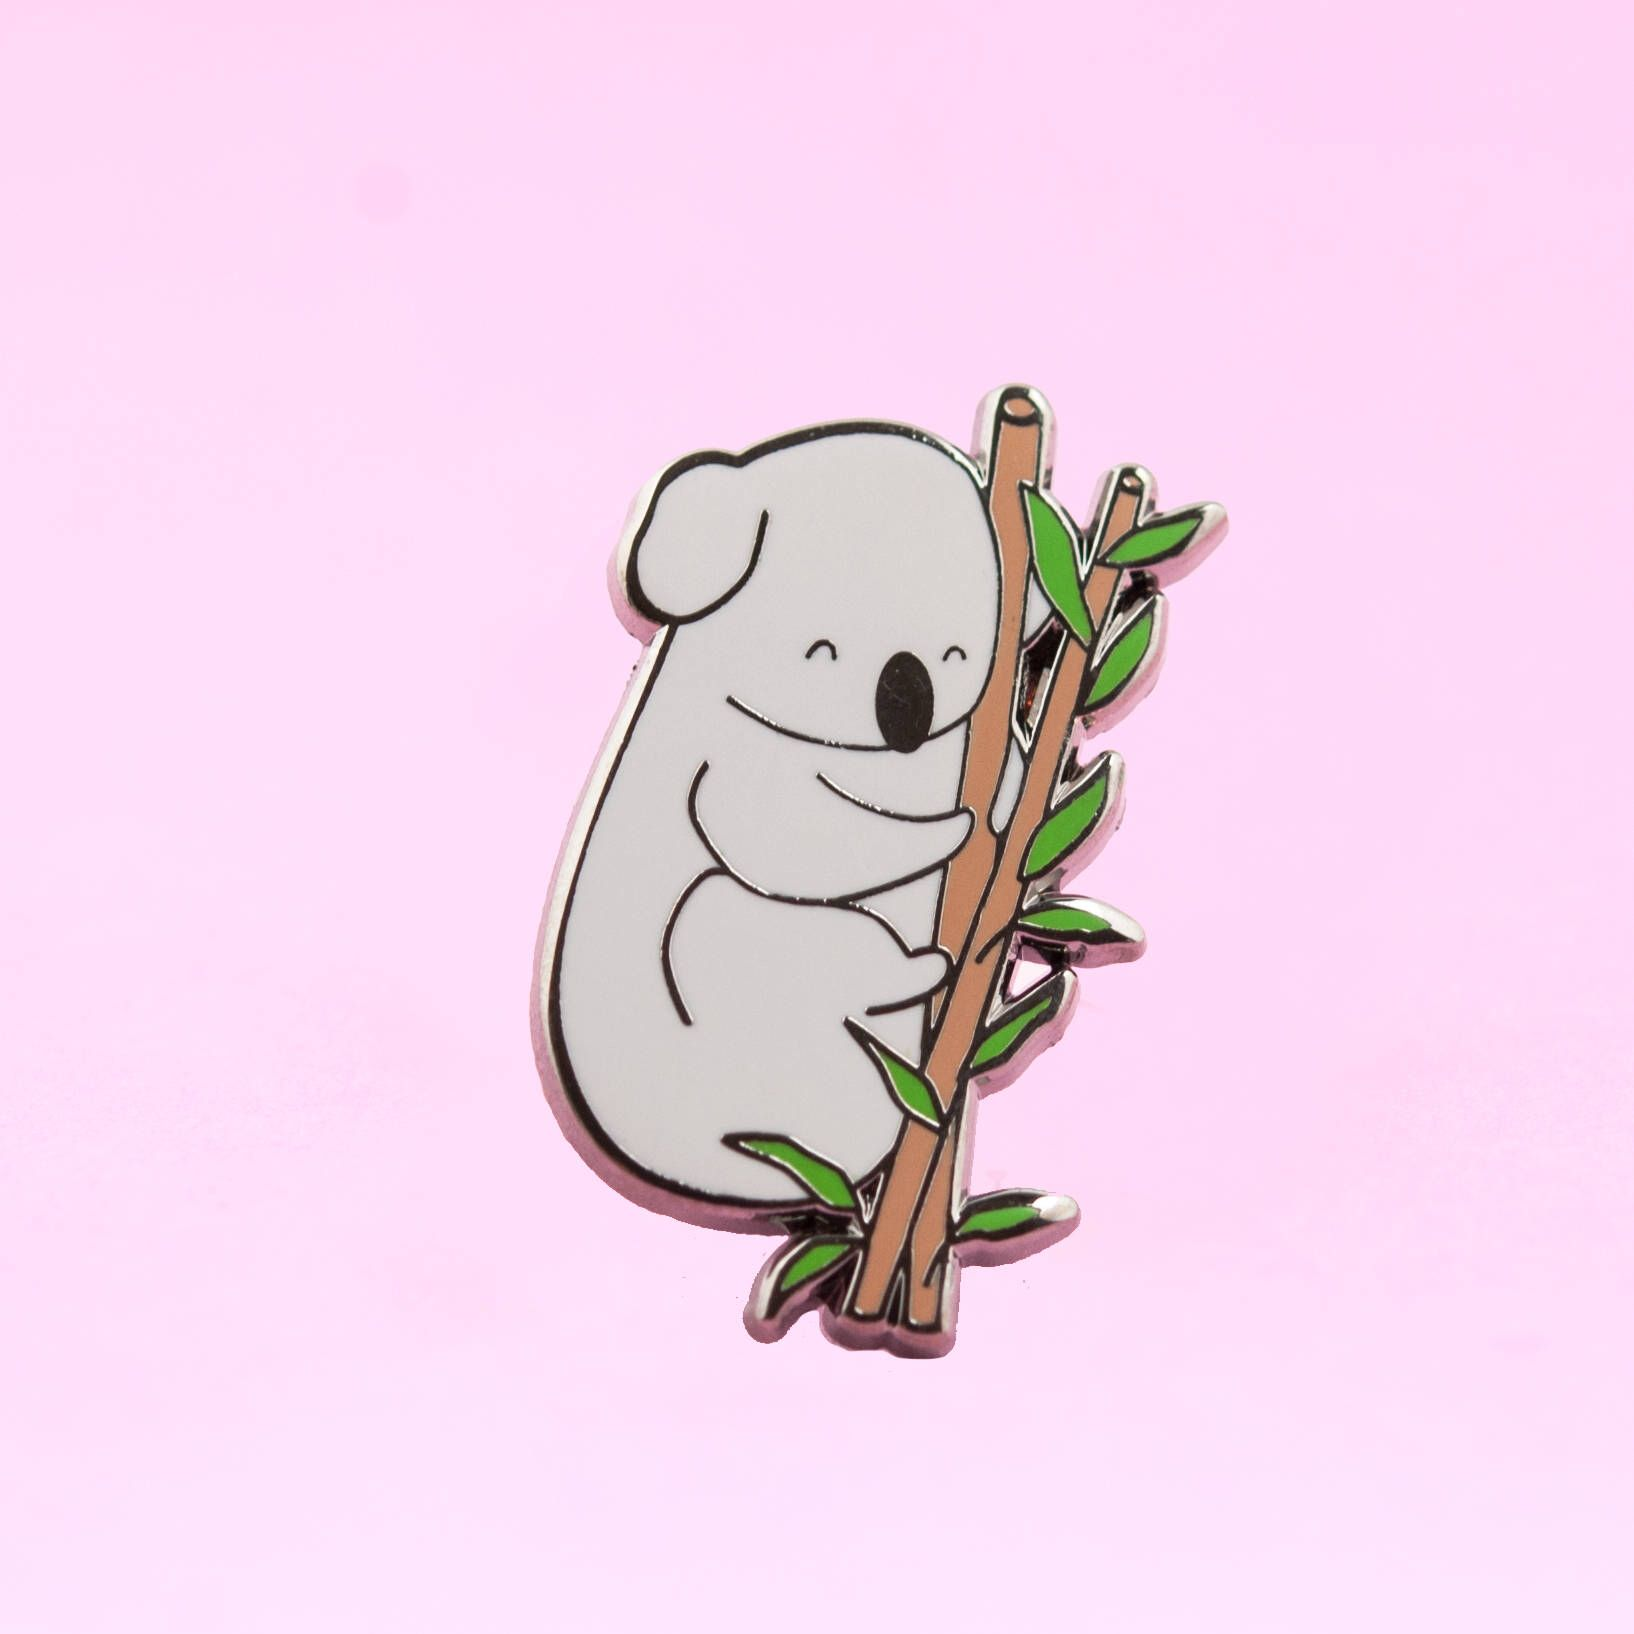 Katie The Sleepy Koala Pin By Thecleverclove On Etsy